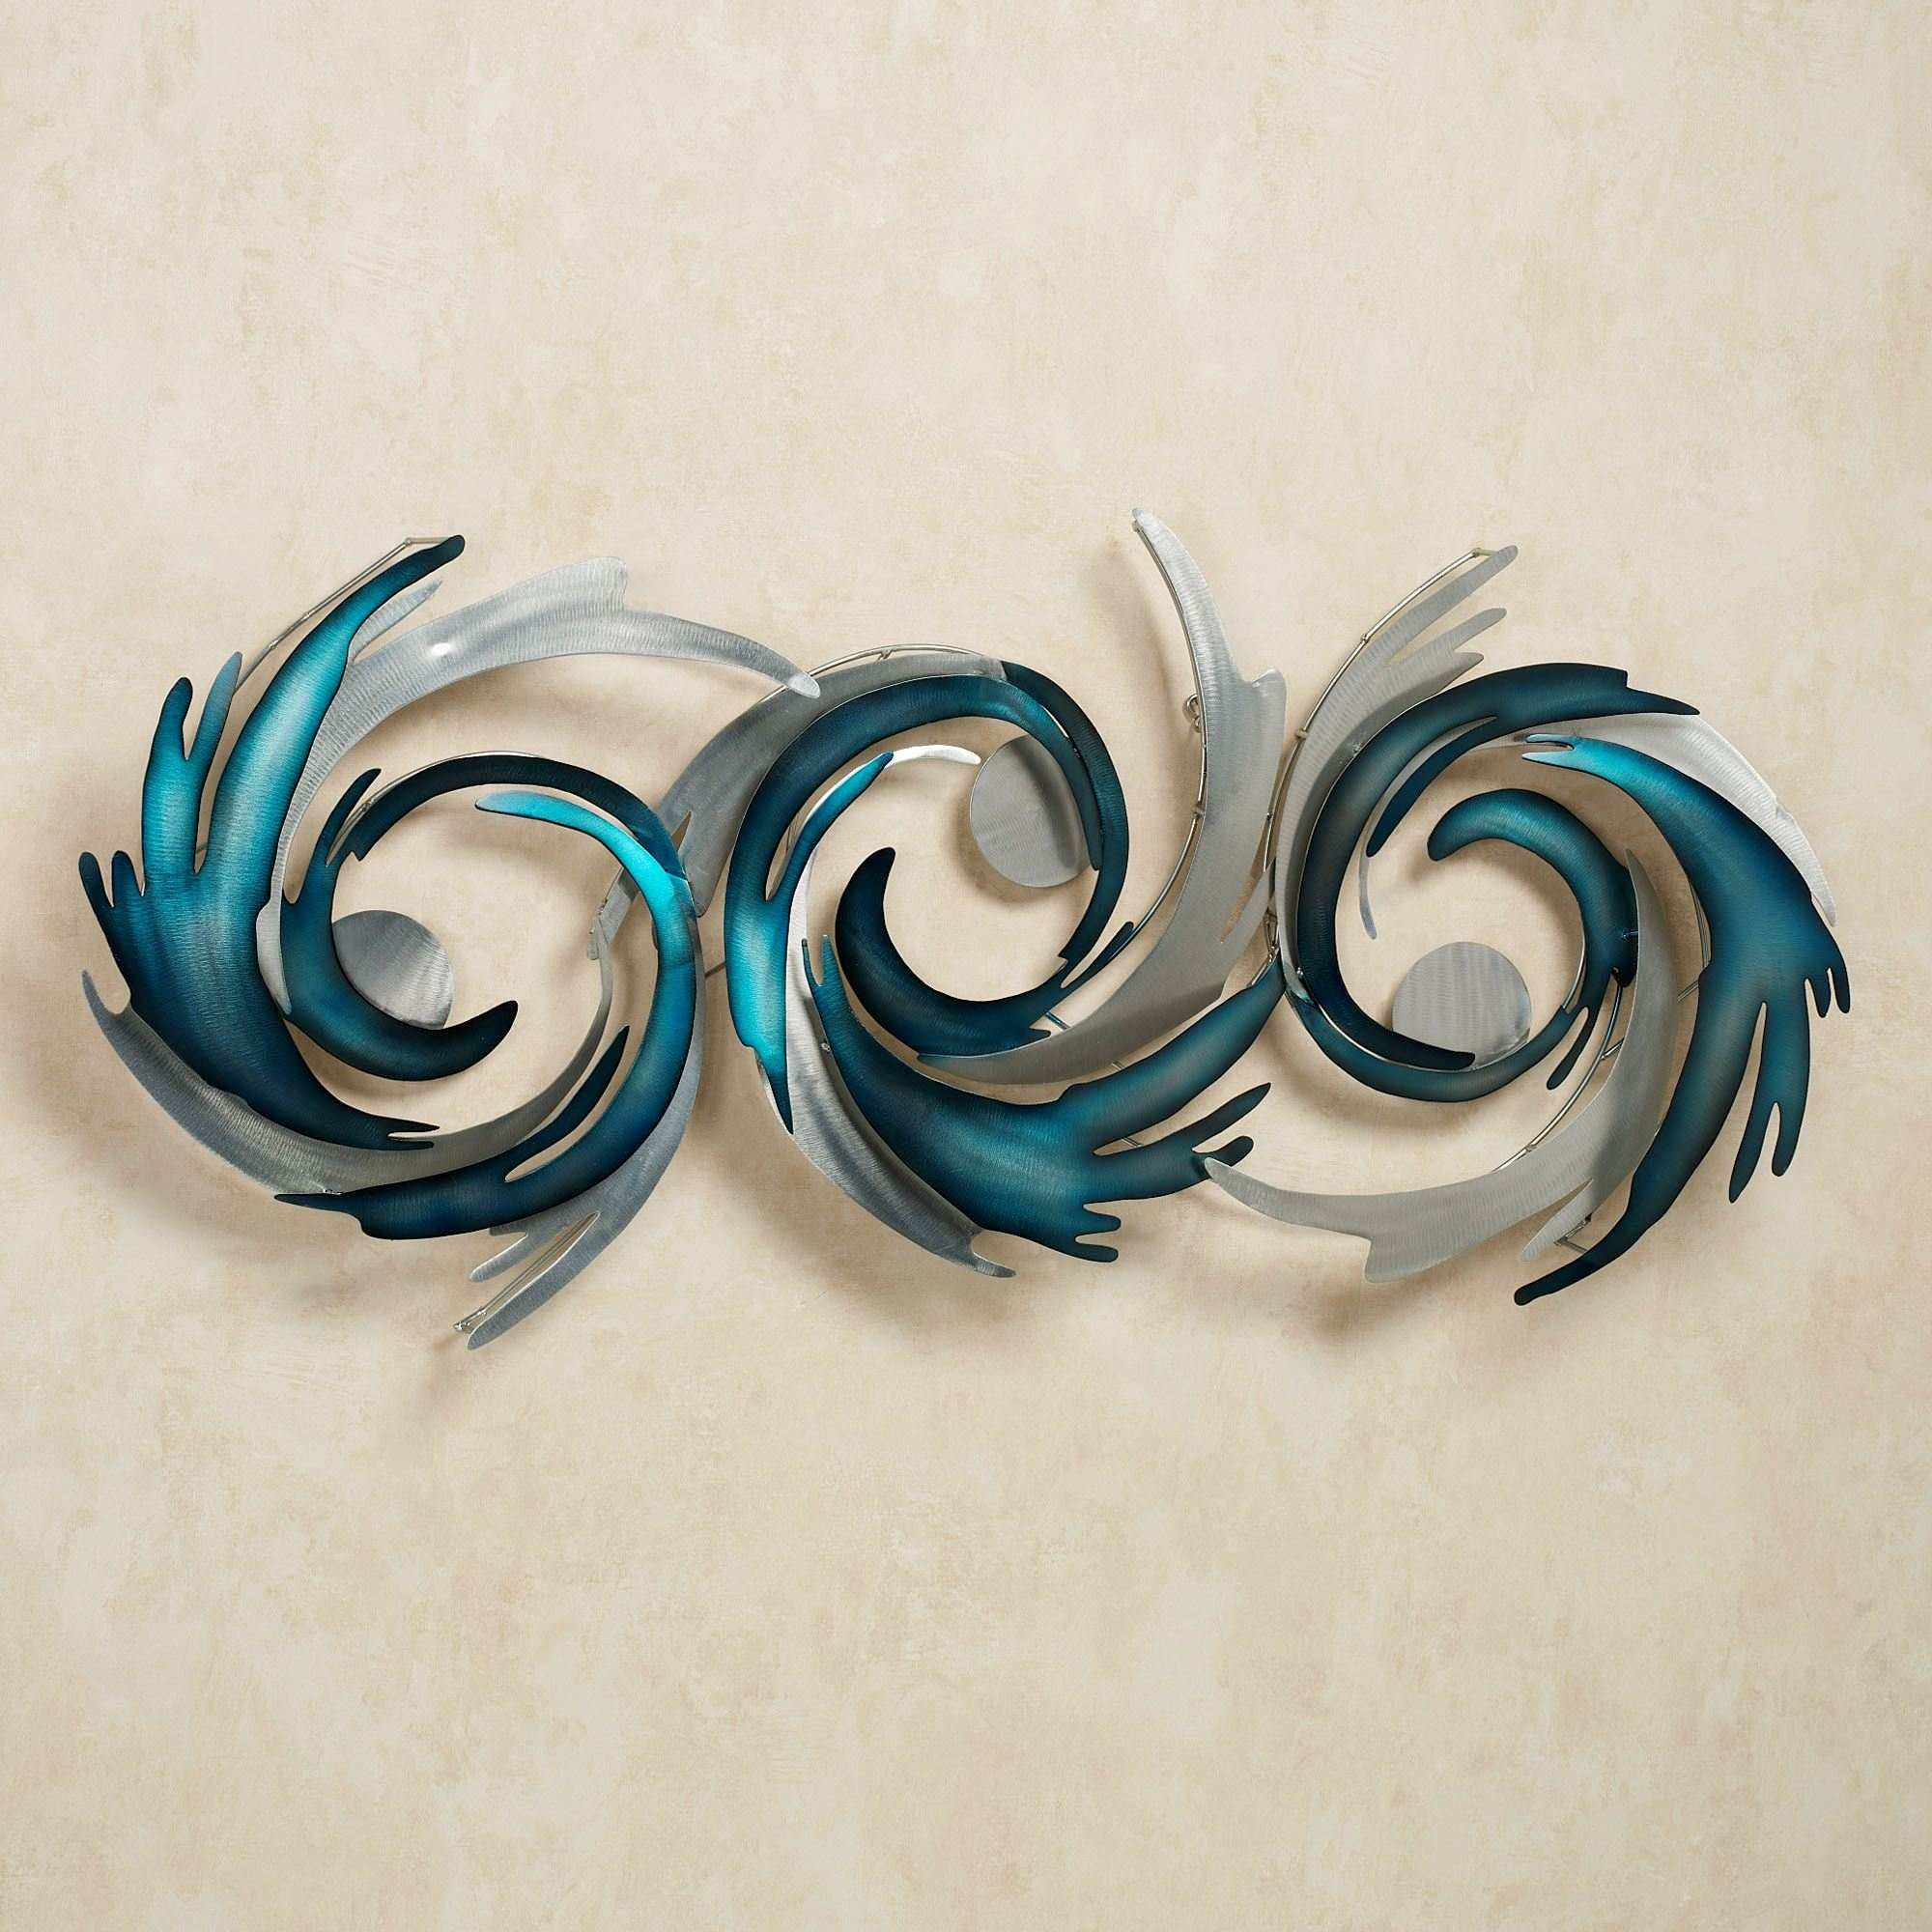 Blue Metal Wall Art Classy Perfect Storm Metal Wall Sculpturejasonw Studios Design Inspiration